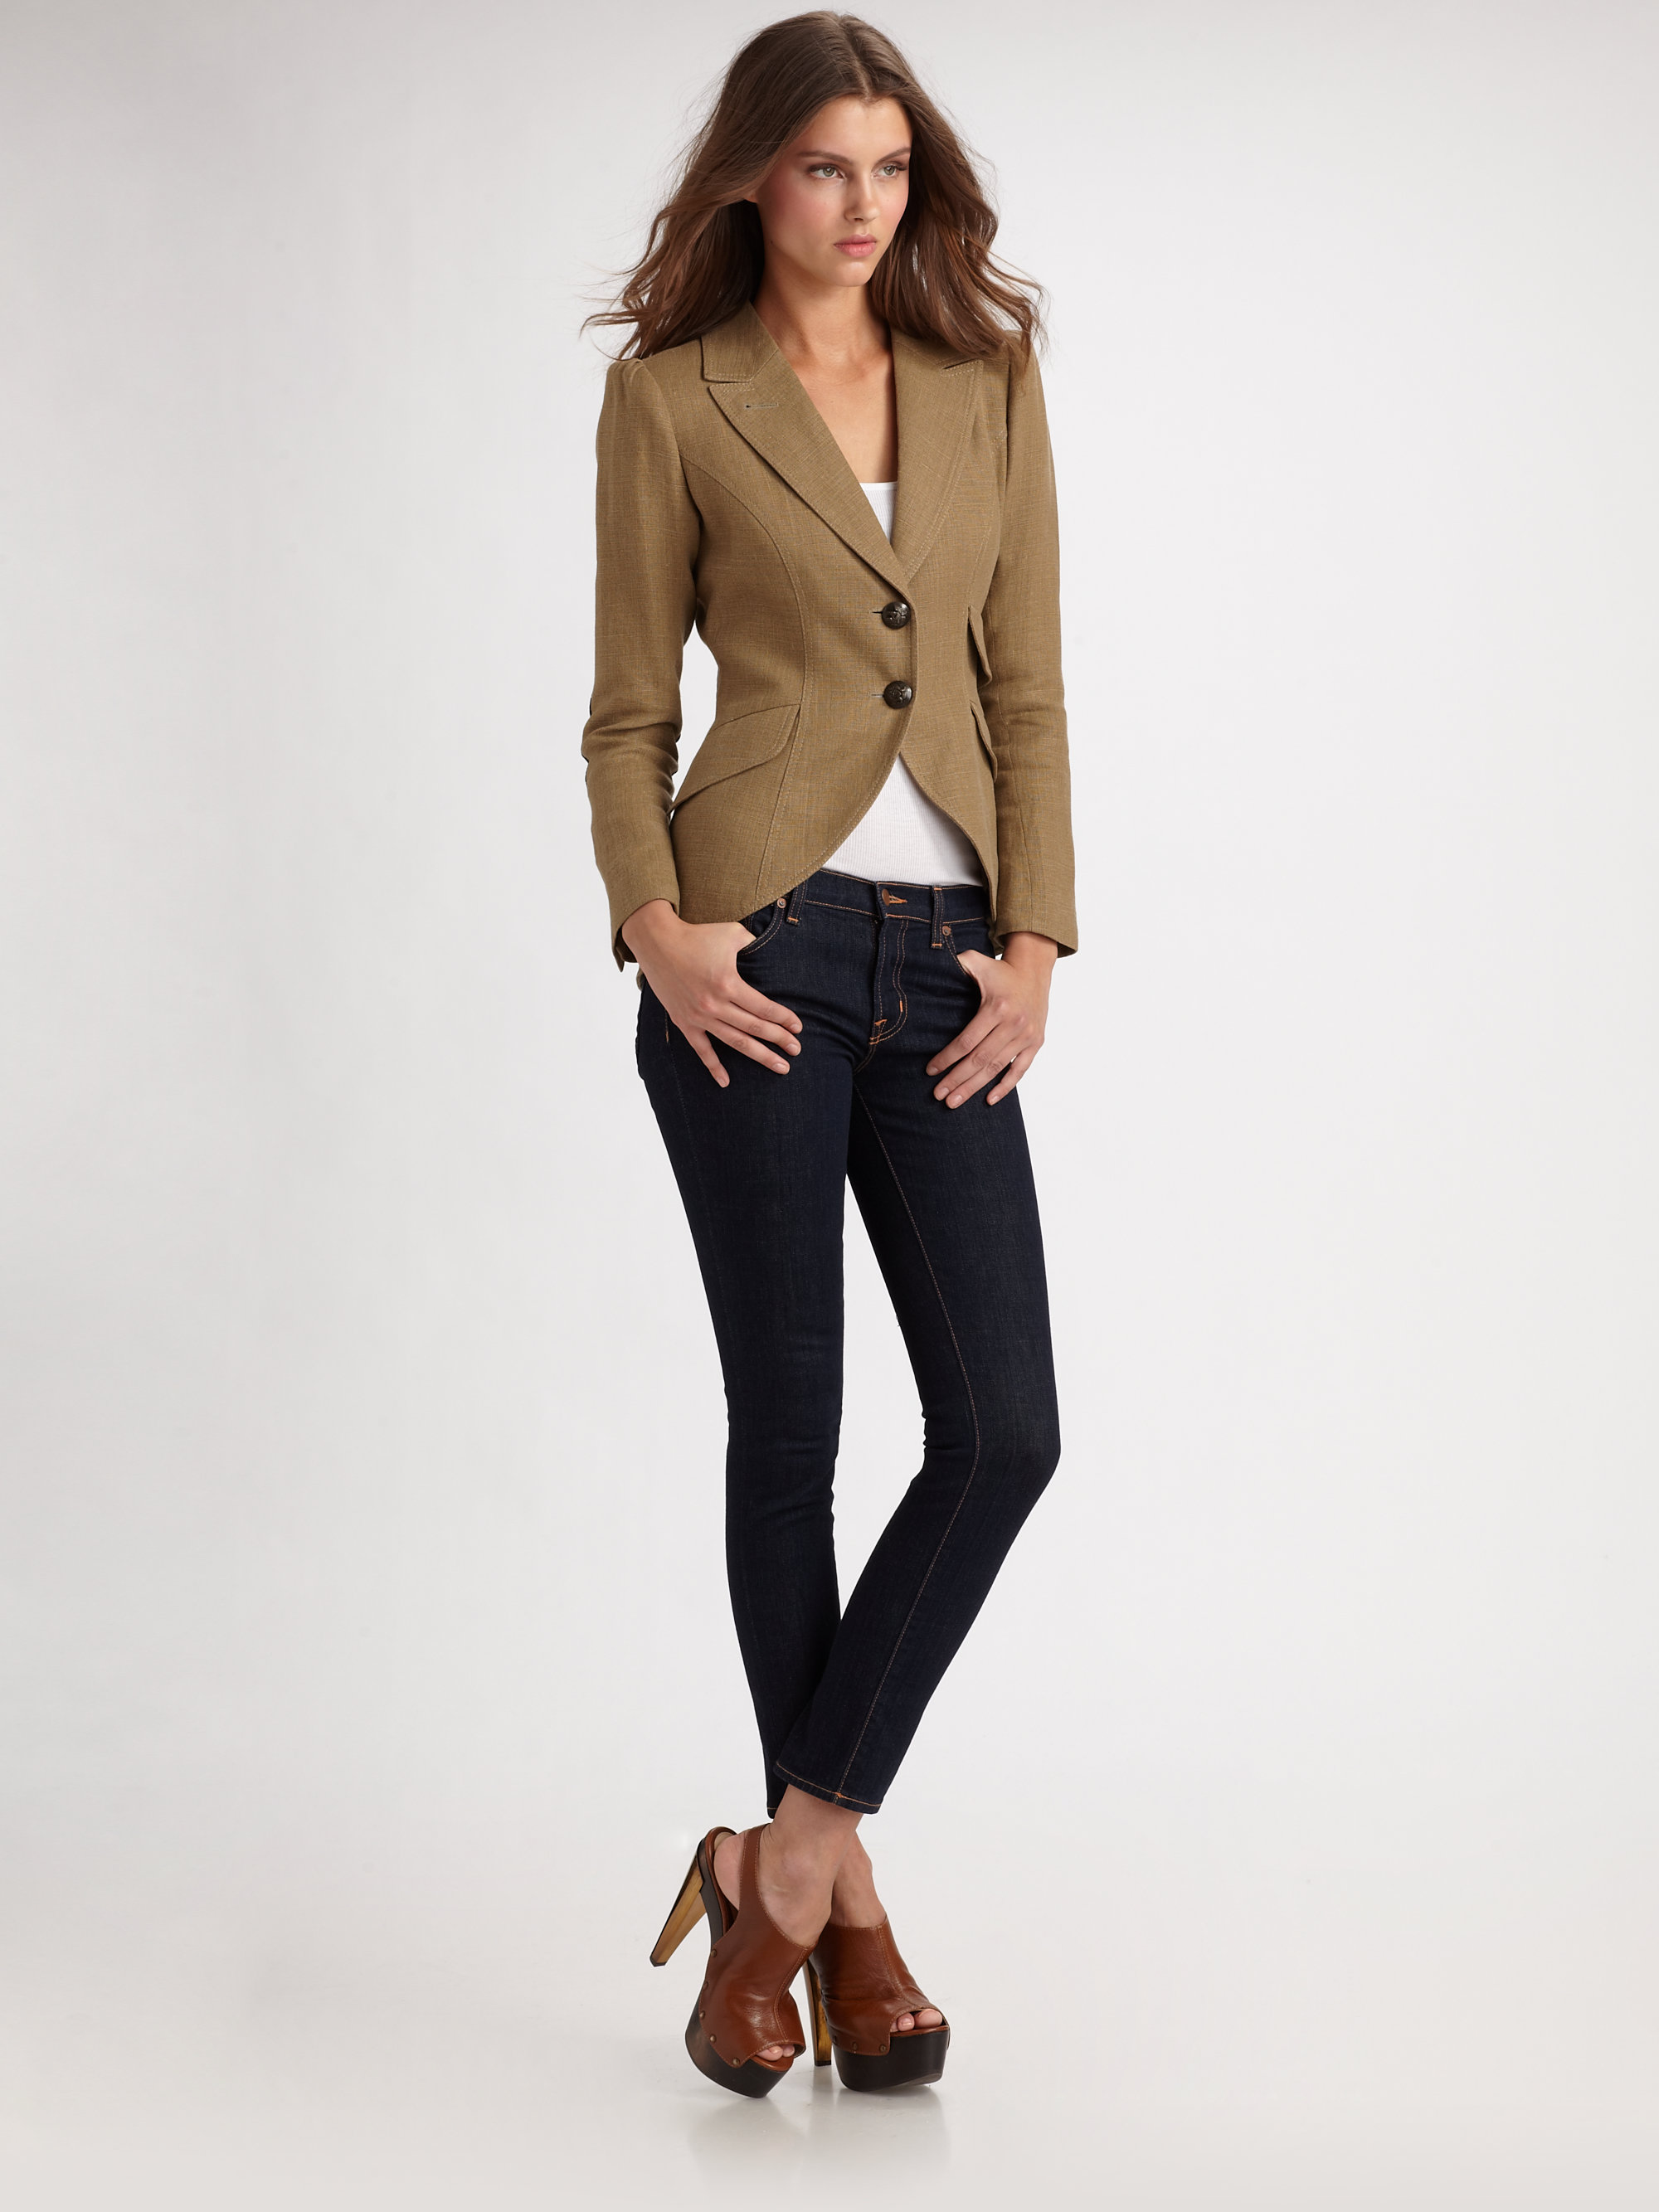 Smythe Equesterian Jacket In Brown Lyst